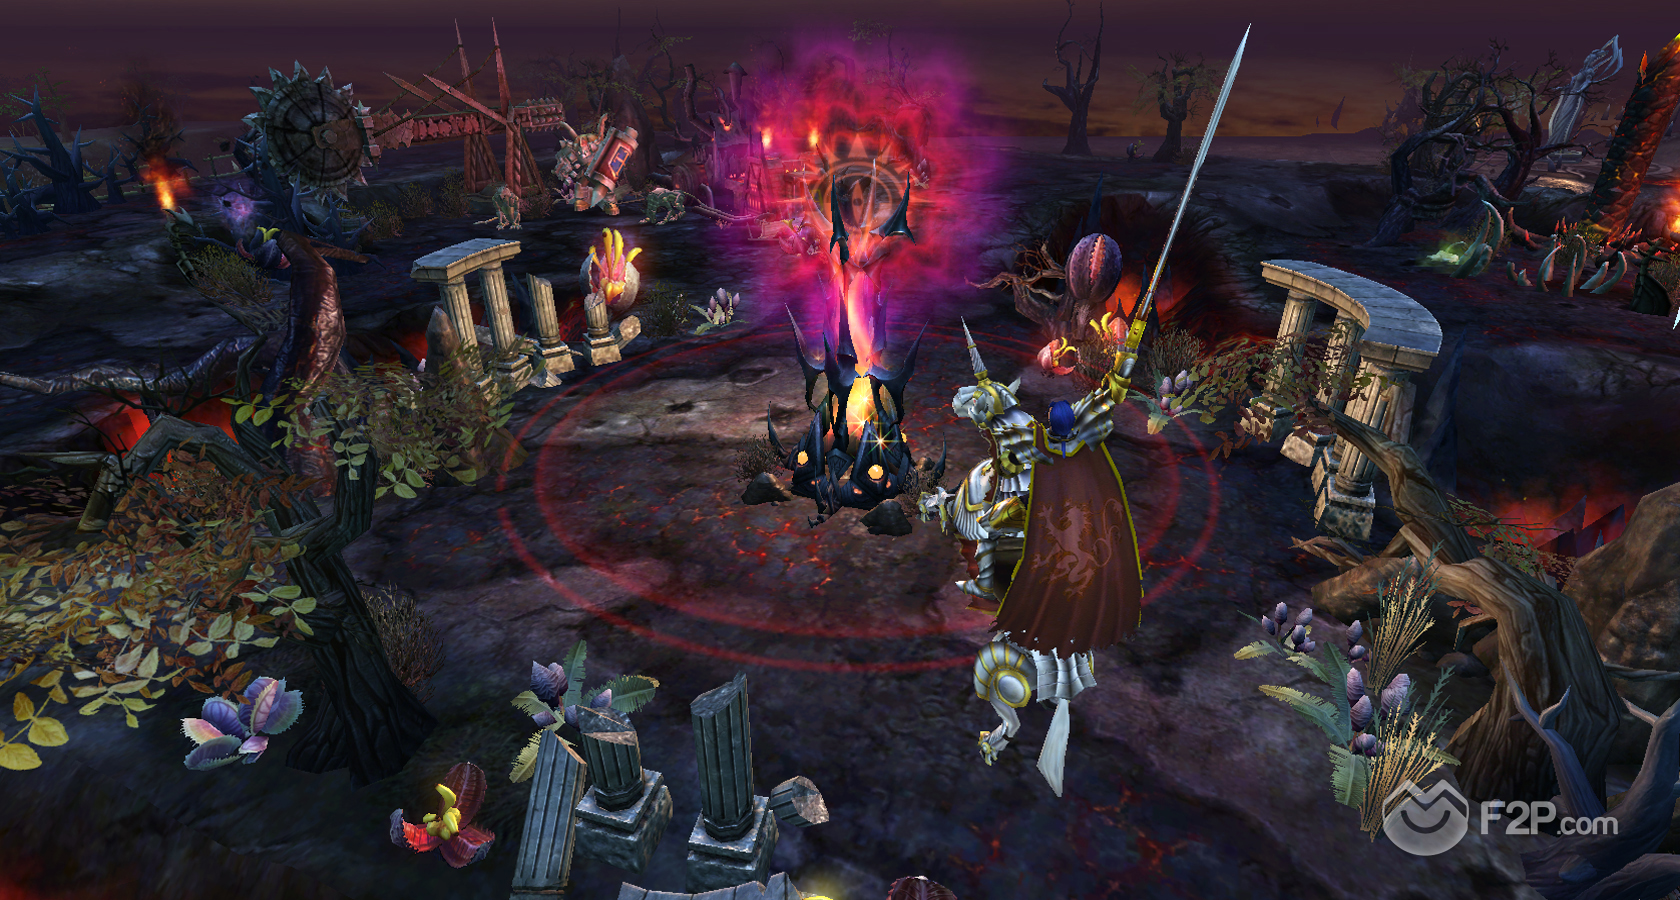 Click image for larger version.Name:Realm of the Titans 3.jpgViews:317Size:1.33 MBID:3353